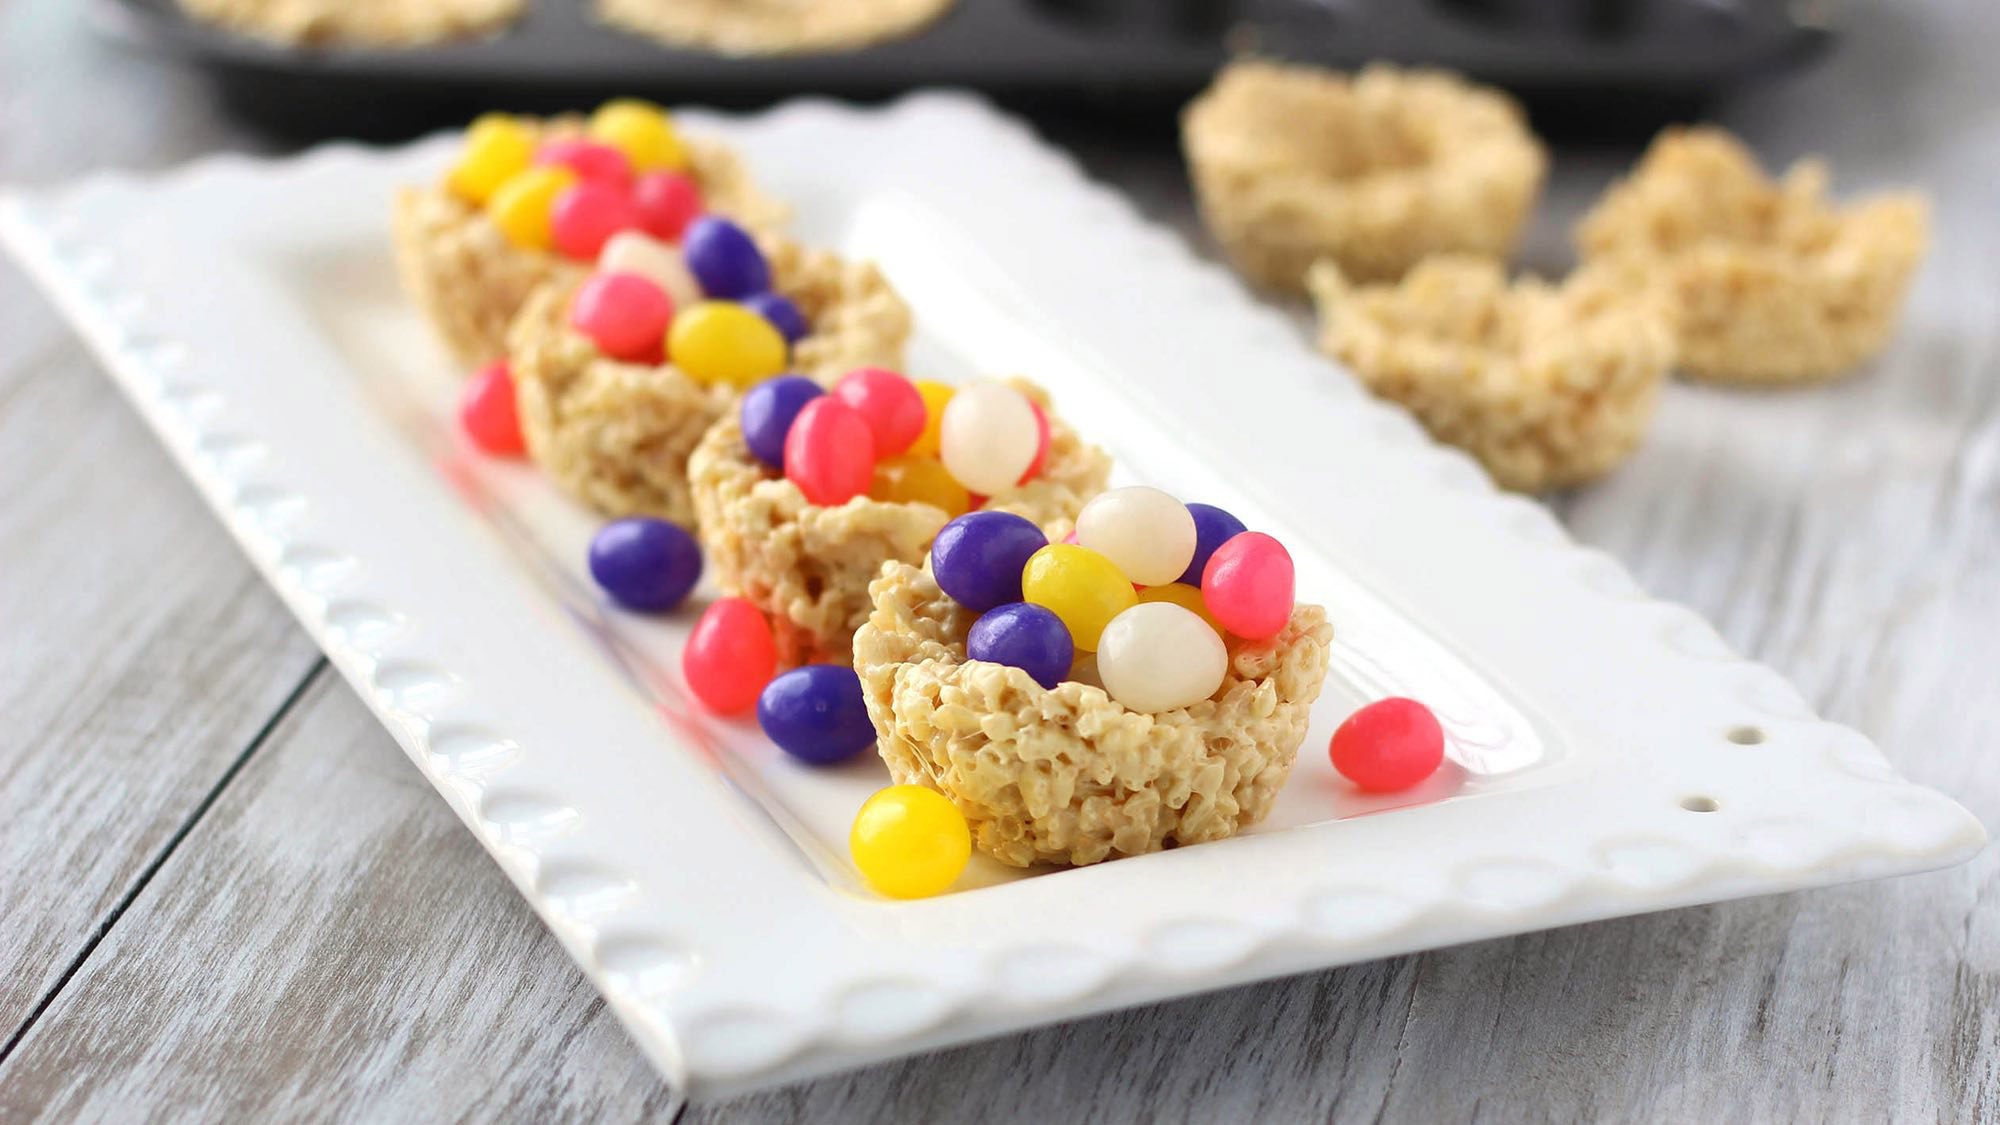 McCormick Easter Basket Crispy Treats